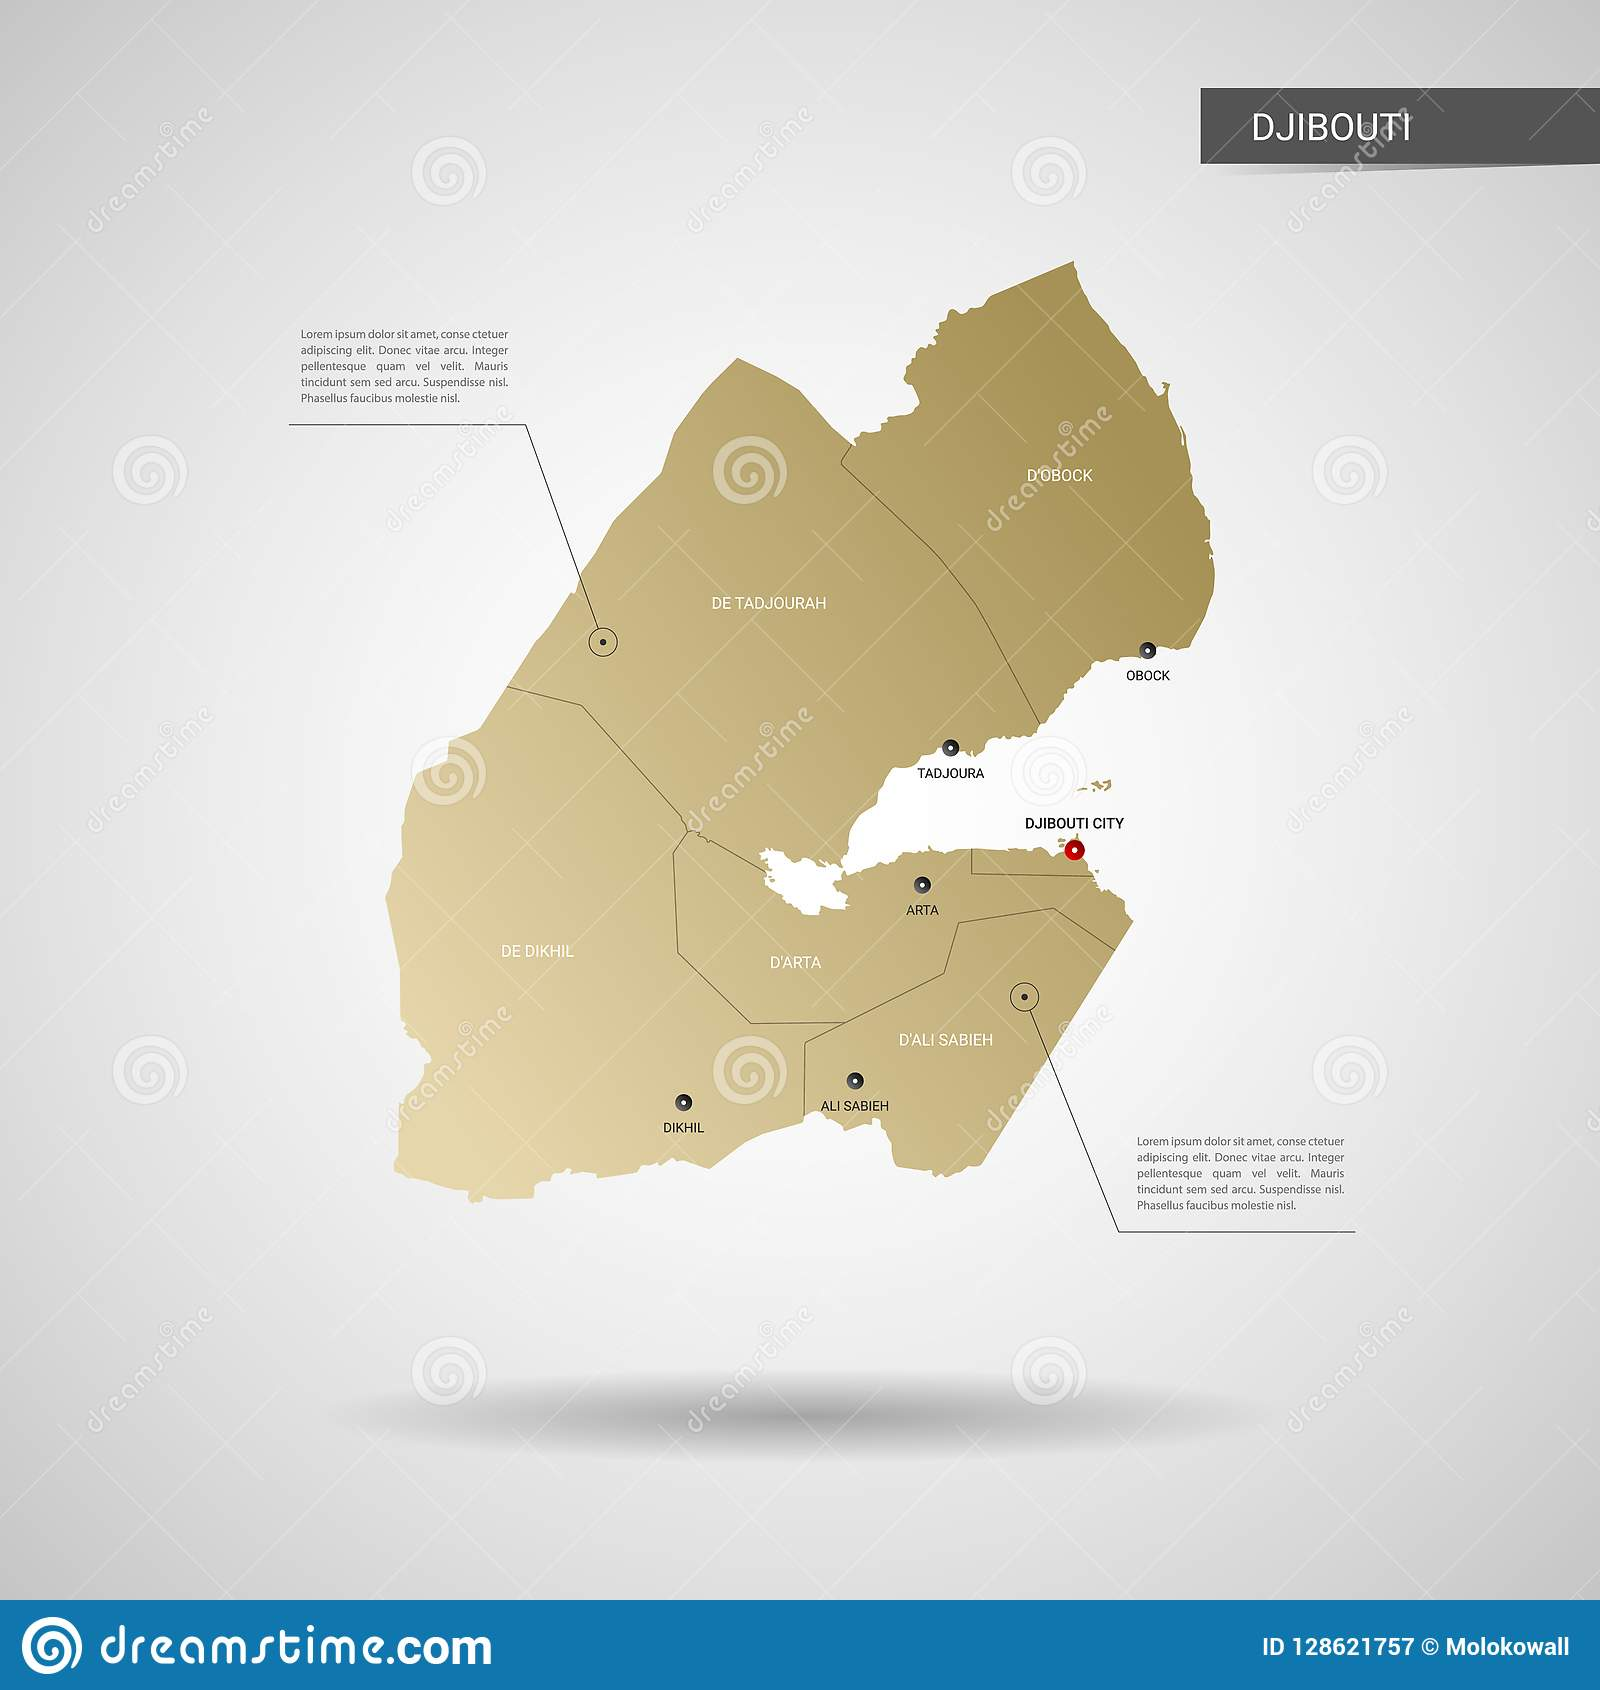 Stylized Djibouti Map Vector Illustration. Stock Vector ... on